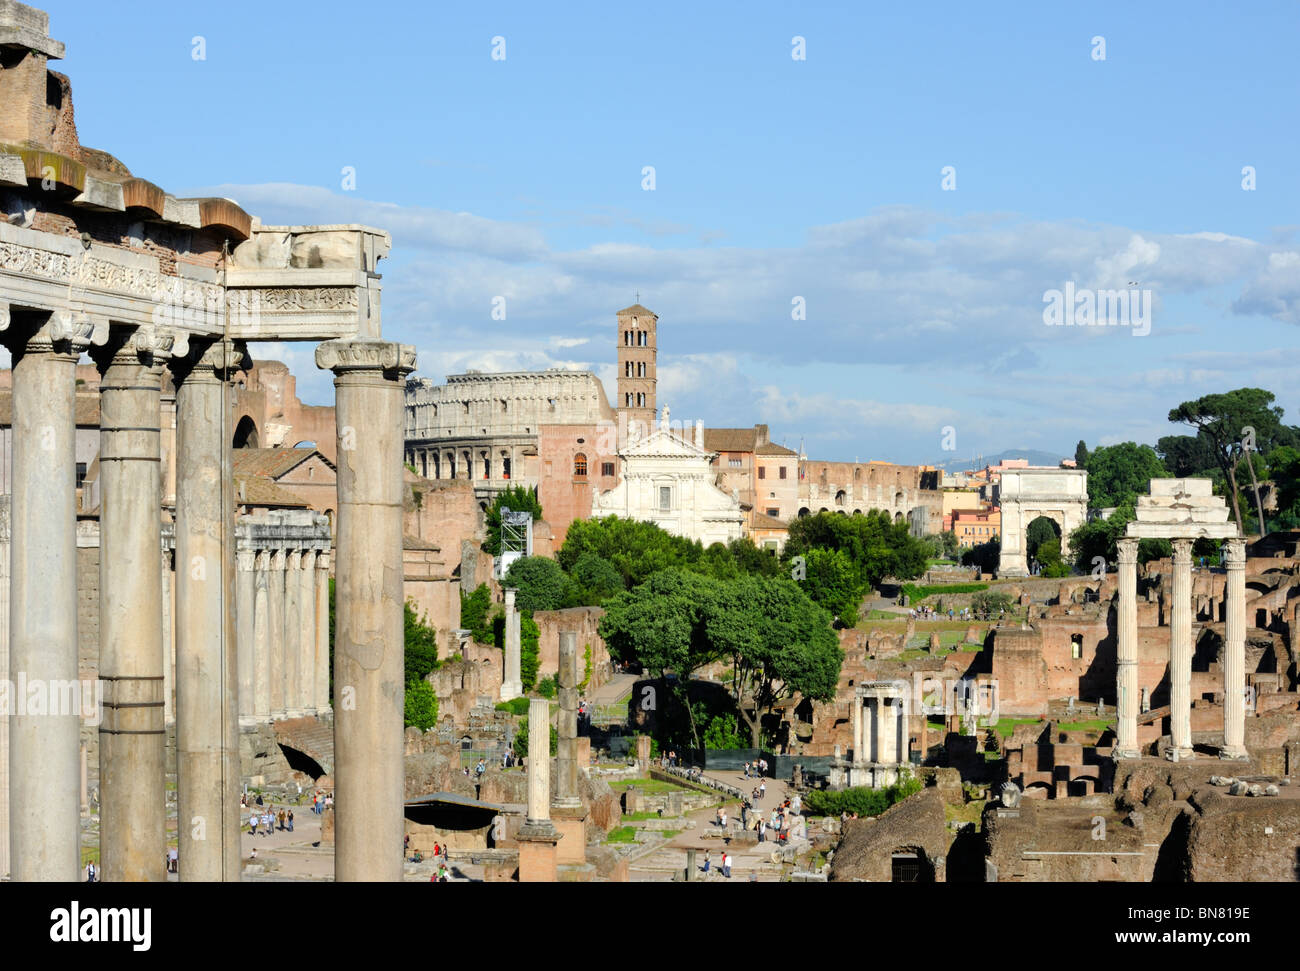 The Colosseo and the Foro Romano, Rome, Italy - Stock Image